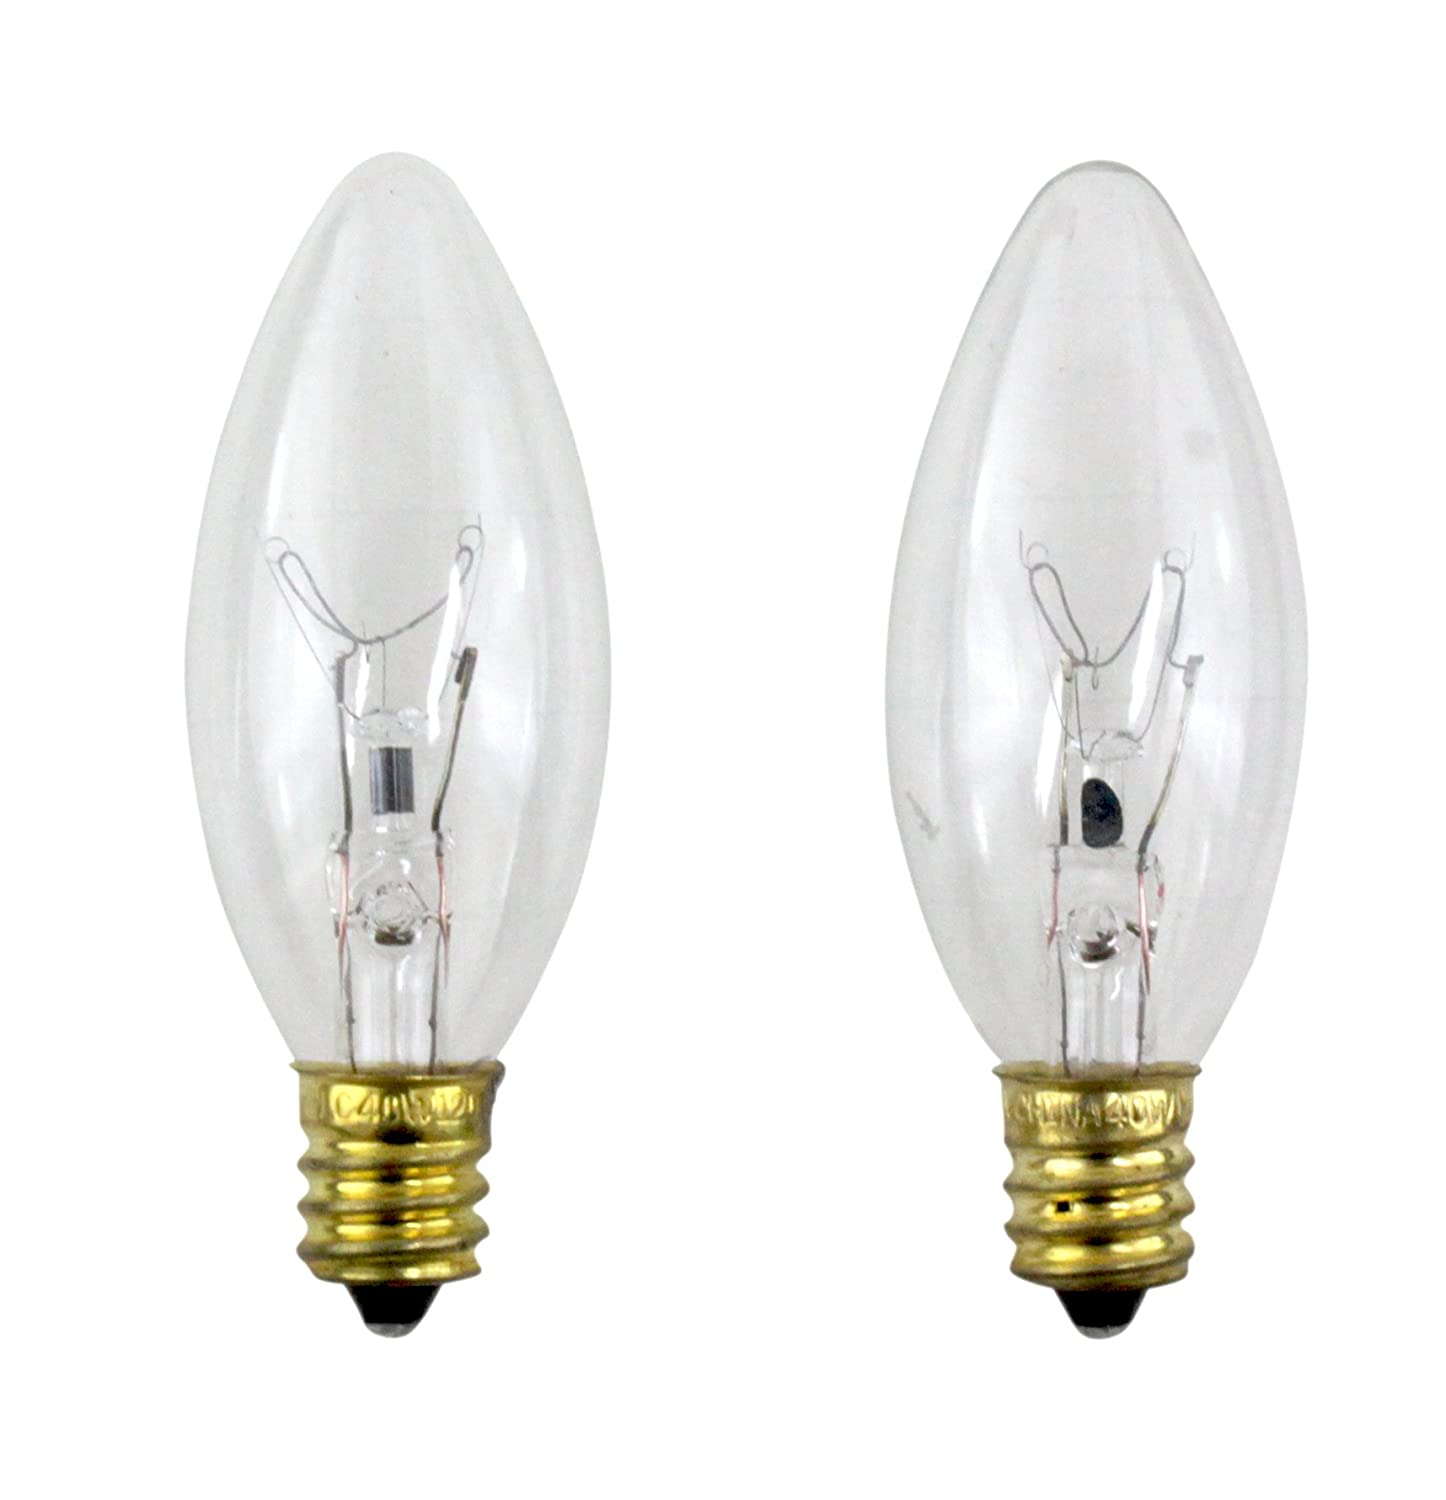 PHILIPS 40-Watt Clear Ceiling Fan Light Bulbs - Candelabra Base B8 (2-Pack)  - Incandescent Bulbs - Amazon.com - PHILIPS 40-Watt Clear Ceiling Fan Light Bulbs - Candelabra Base B8